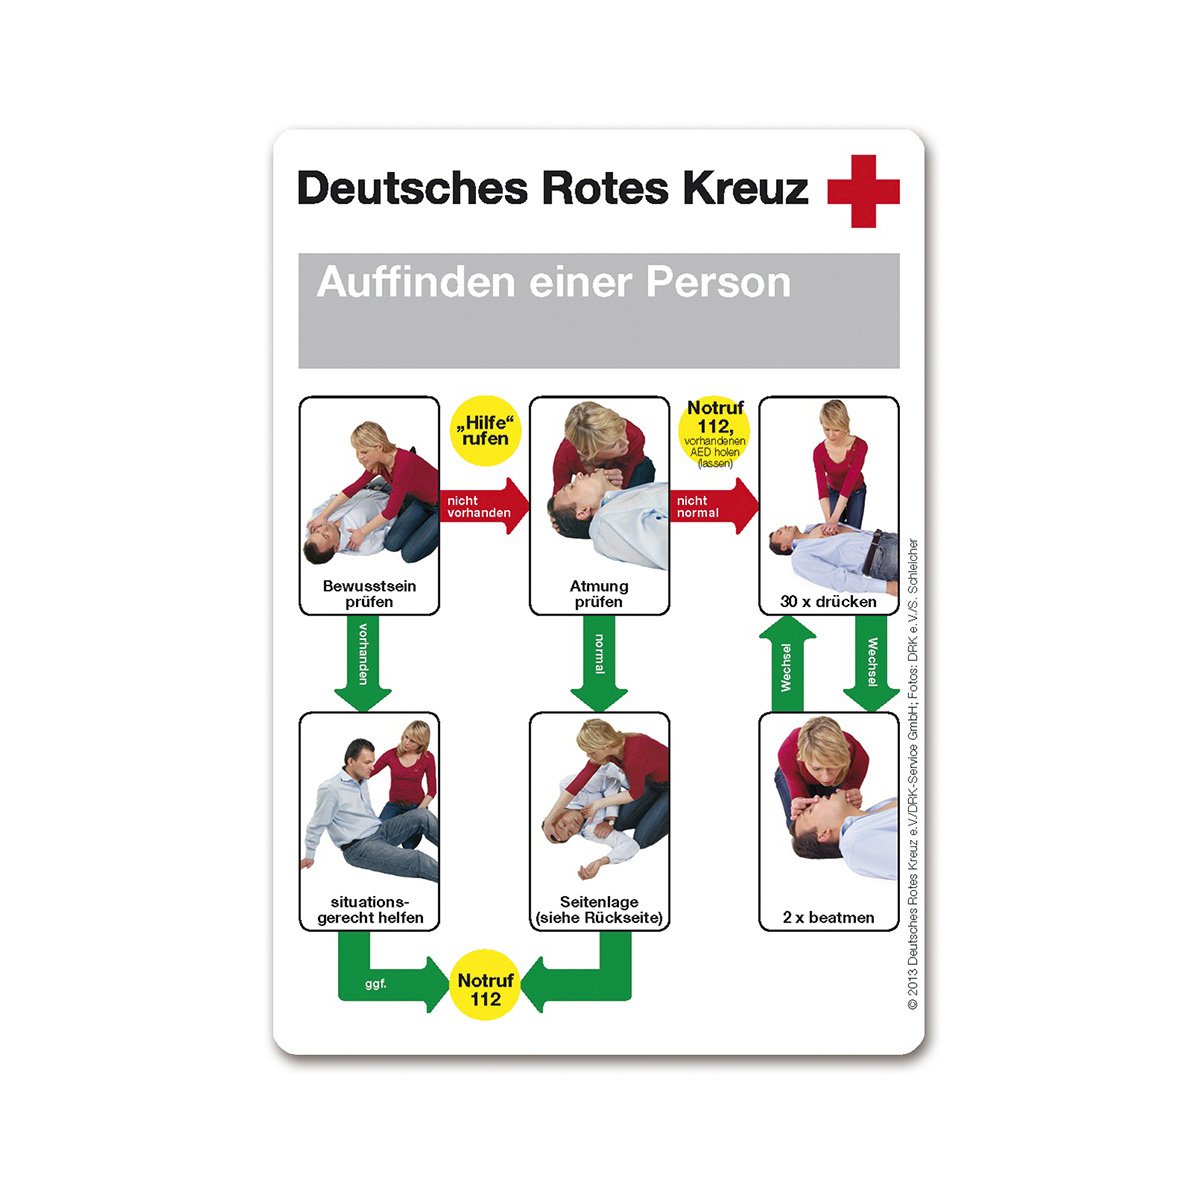 merkkarte auffinden einer person ve 50 st ck. Black Bedroom Furniture Sets. Home Design Ideas